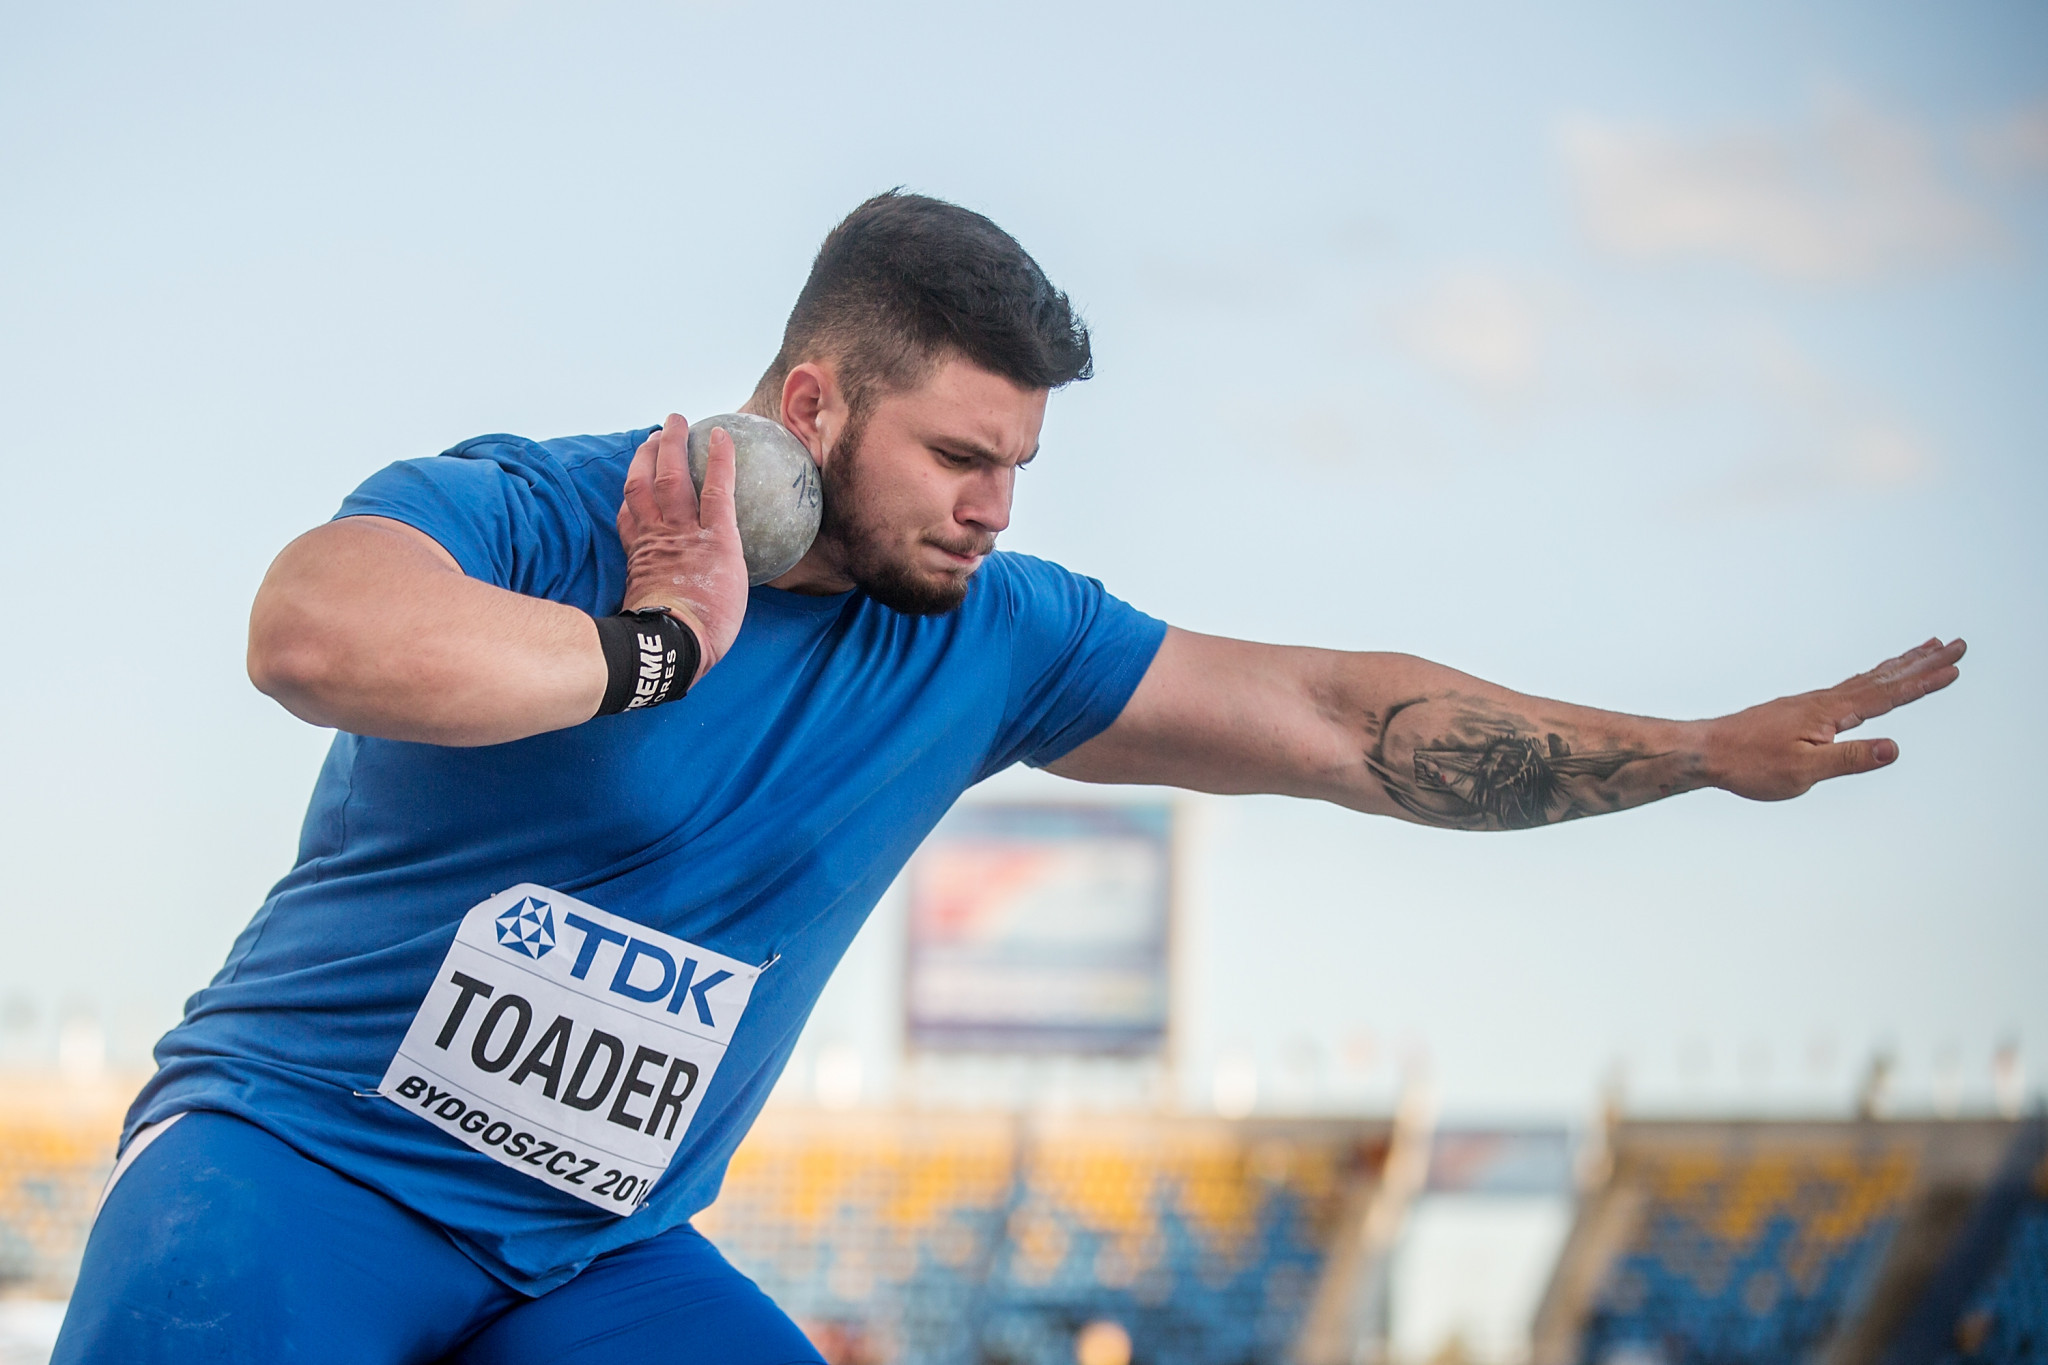 Romania's Andrei Toader has become the first second shot put gold medallist at the 2016 IAAF World U20 Championships to be stripped of the title after it was revealed he had tested positive for banned drugs before the event ©Getty Images